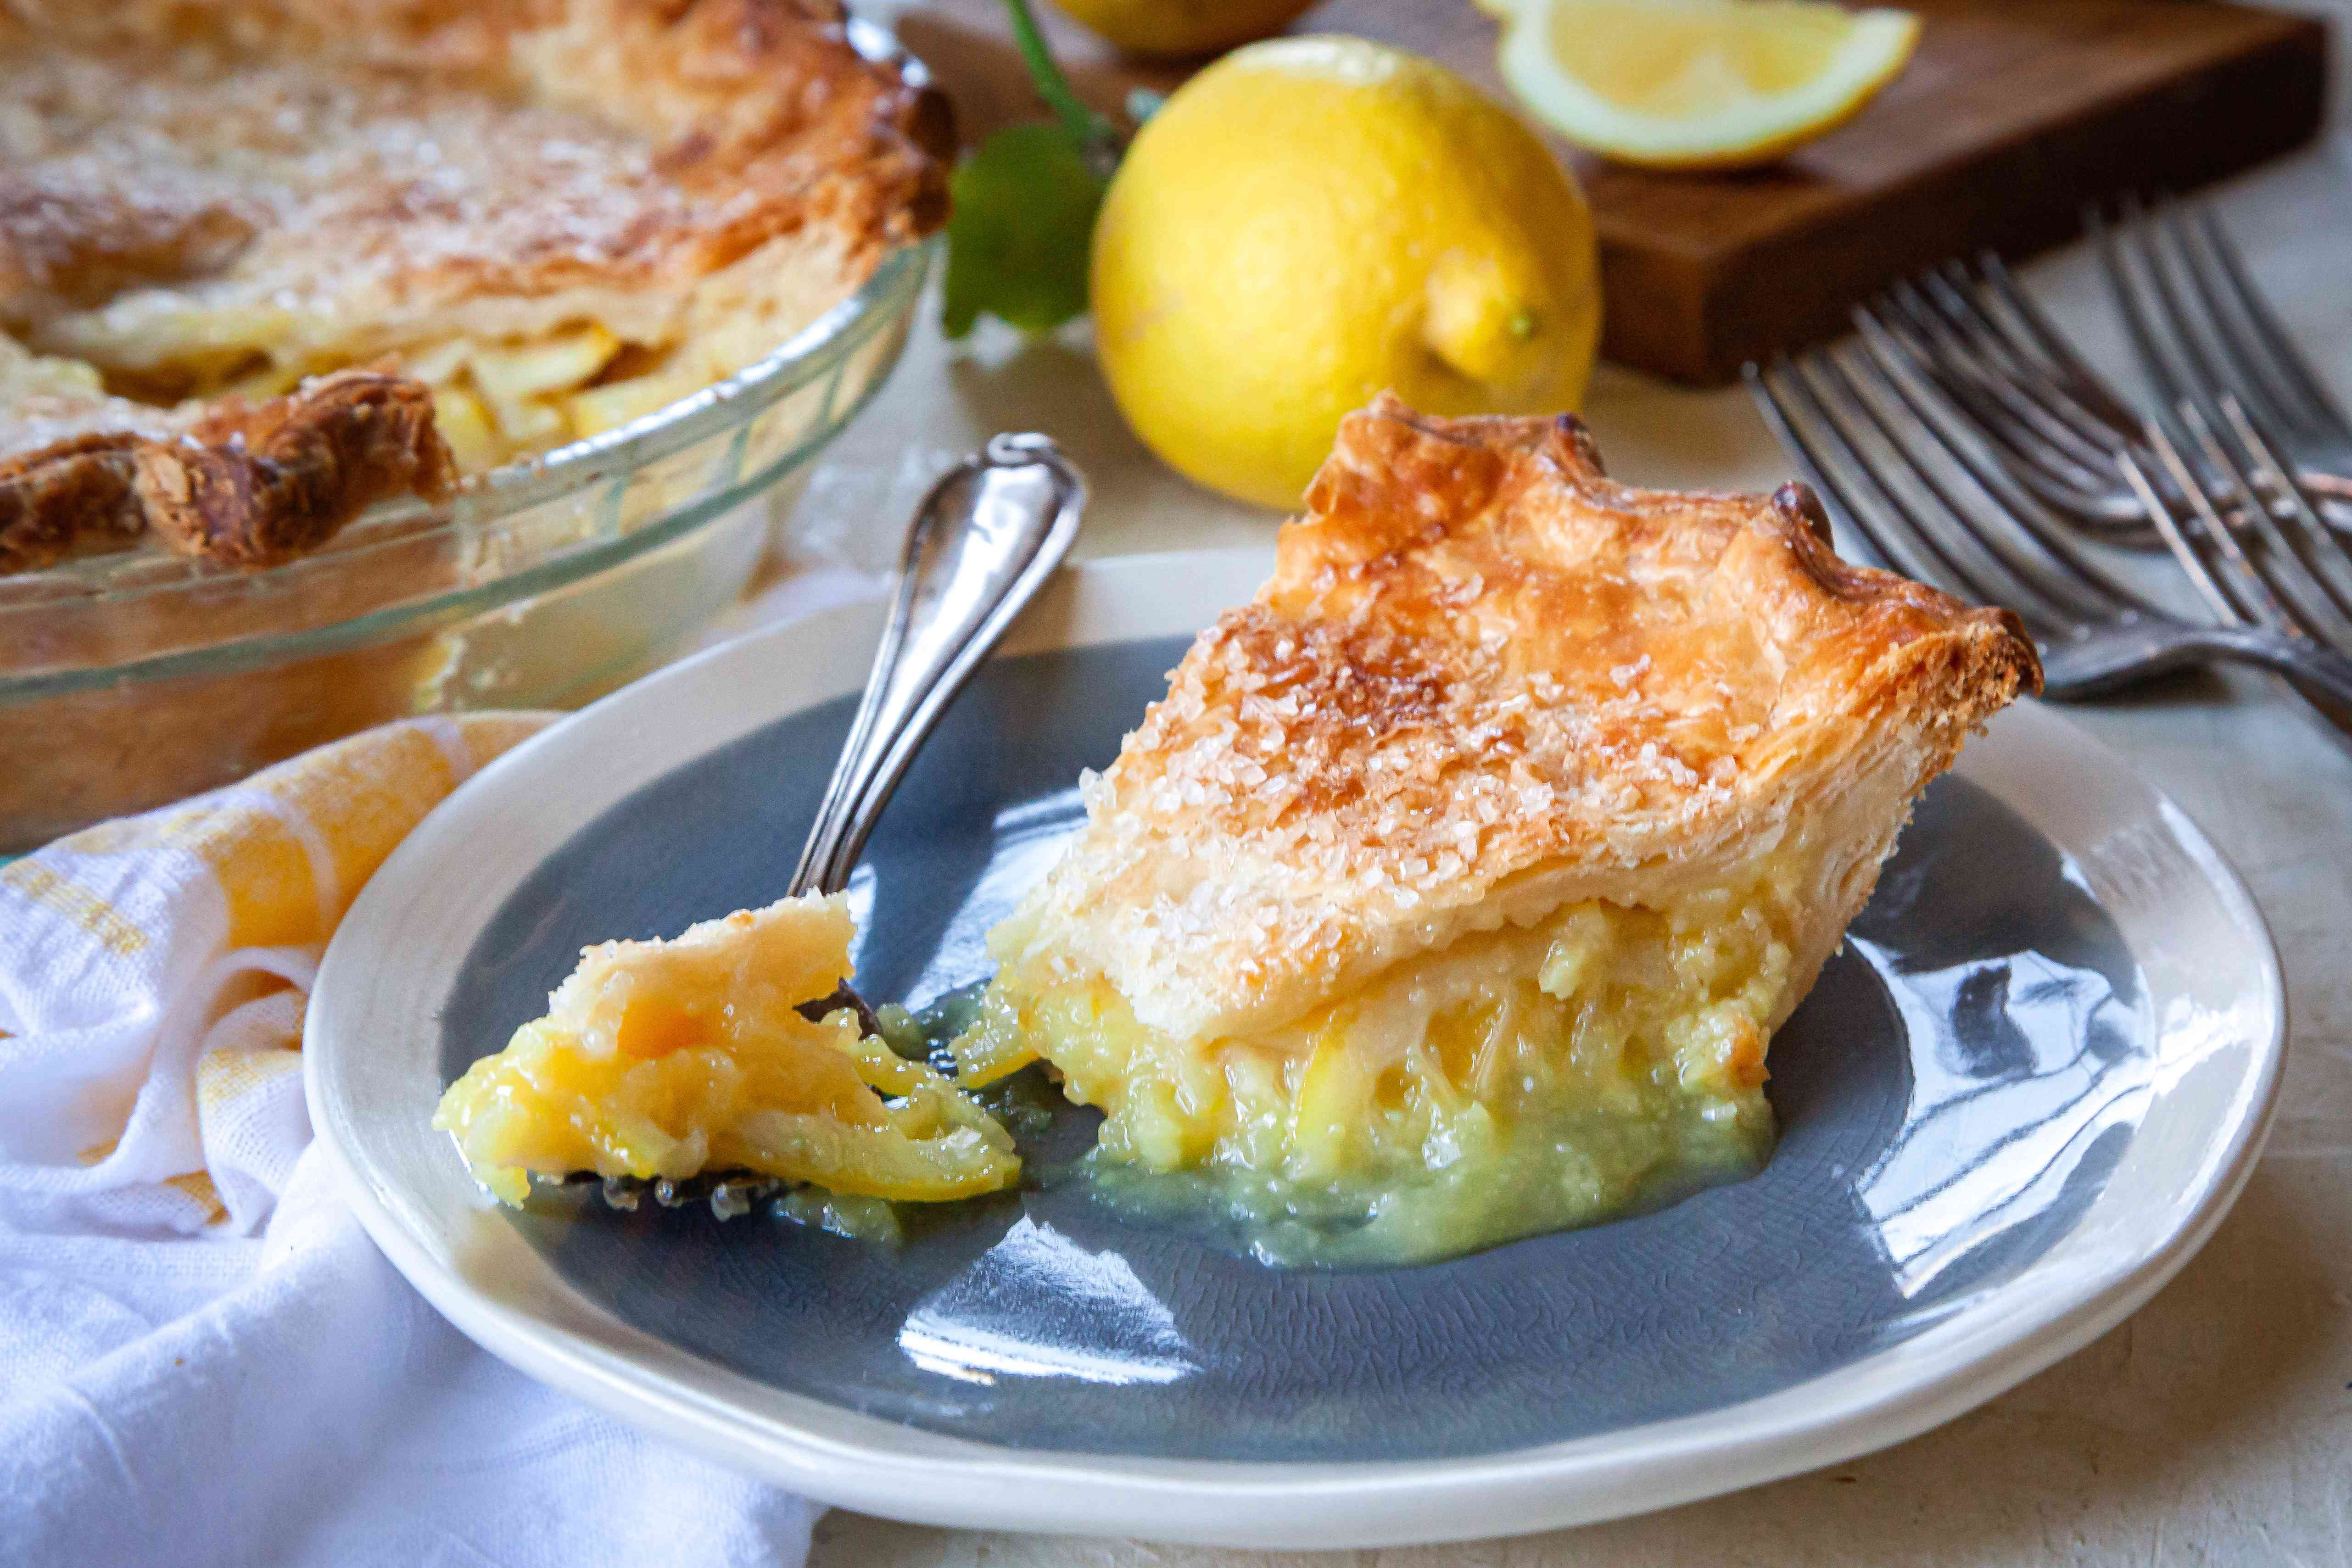 A slice of Ohio Lemon Pie with a forkful on a plate.